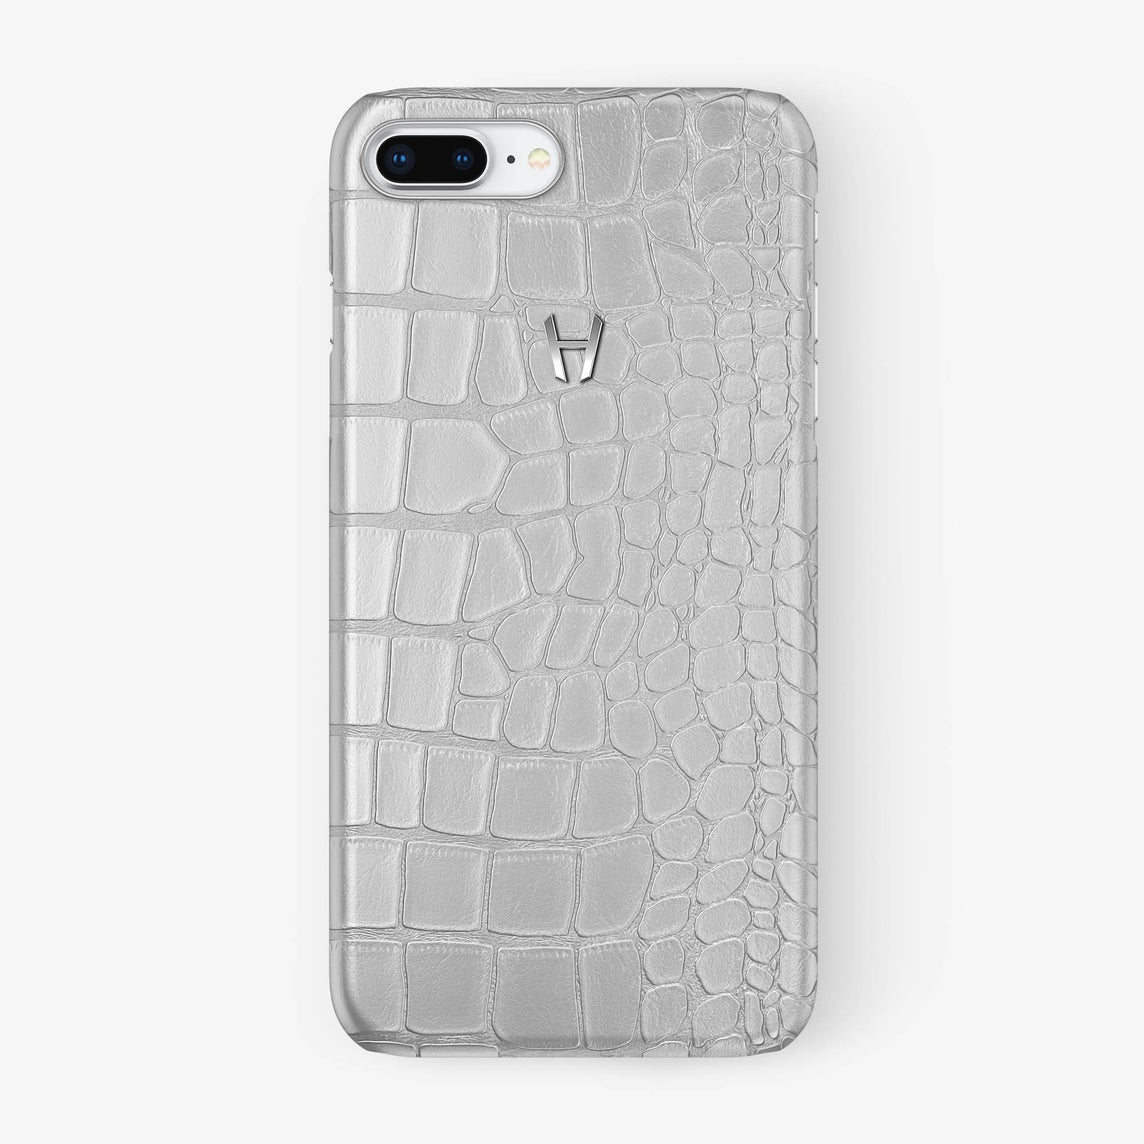 Alligator Case iPhone 7/8 Plus | White - Stainless Steel